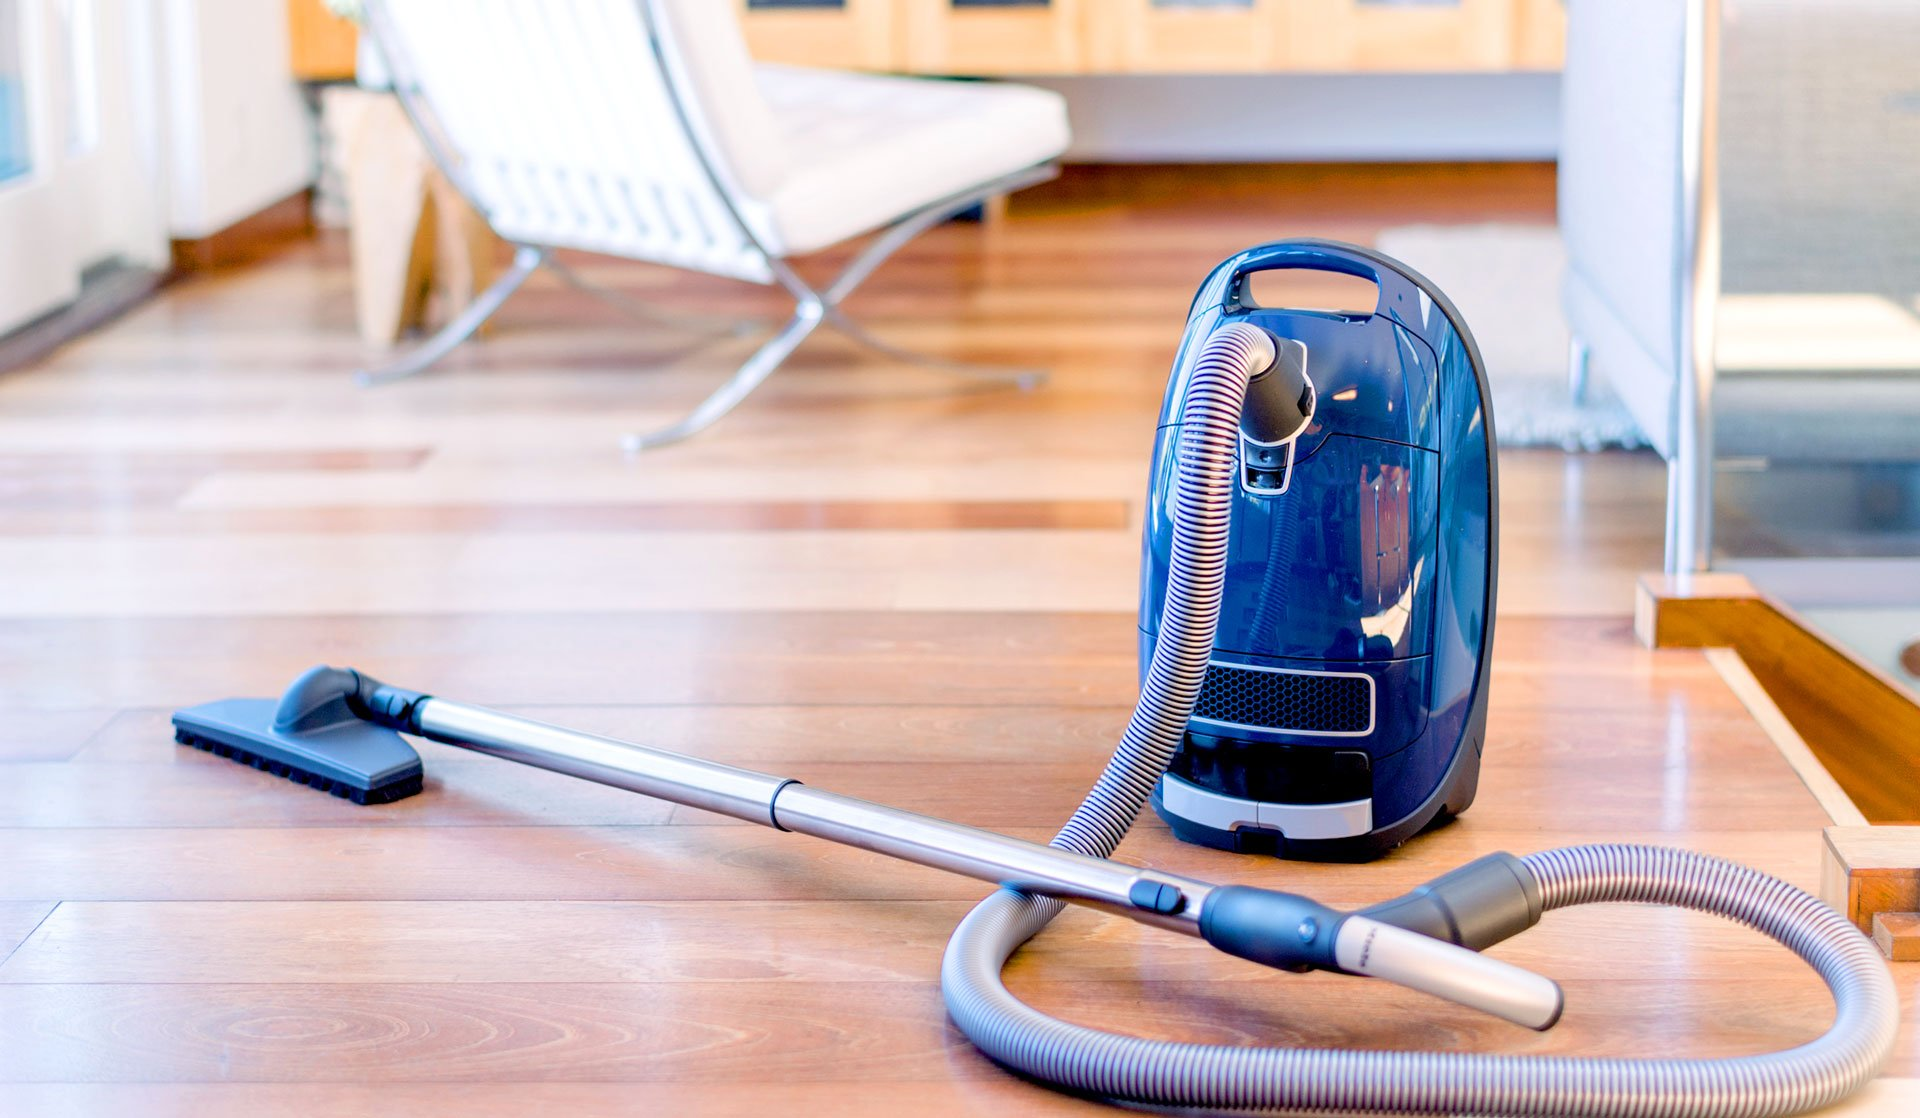 Residential commercial cleaning services from HH Cleaning in Hilton Head and Bluffton.